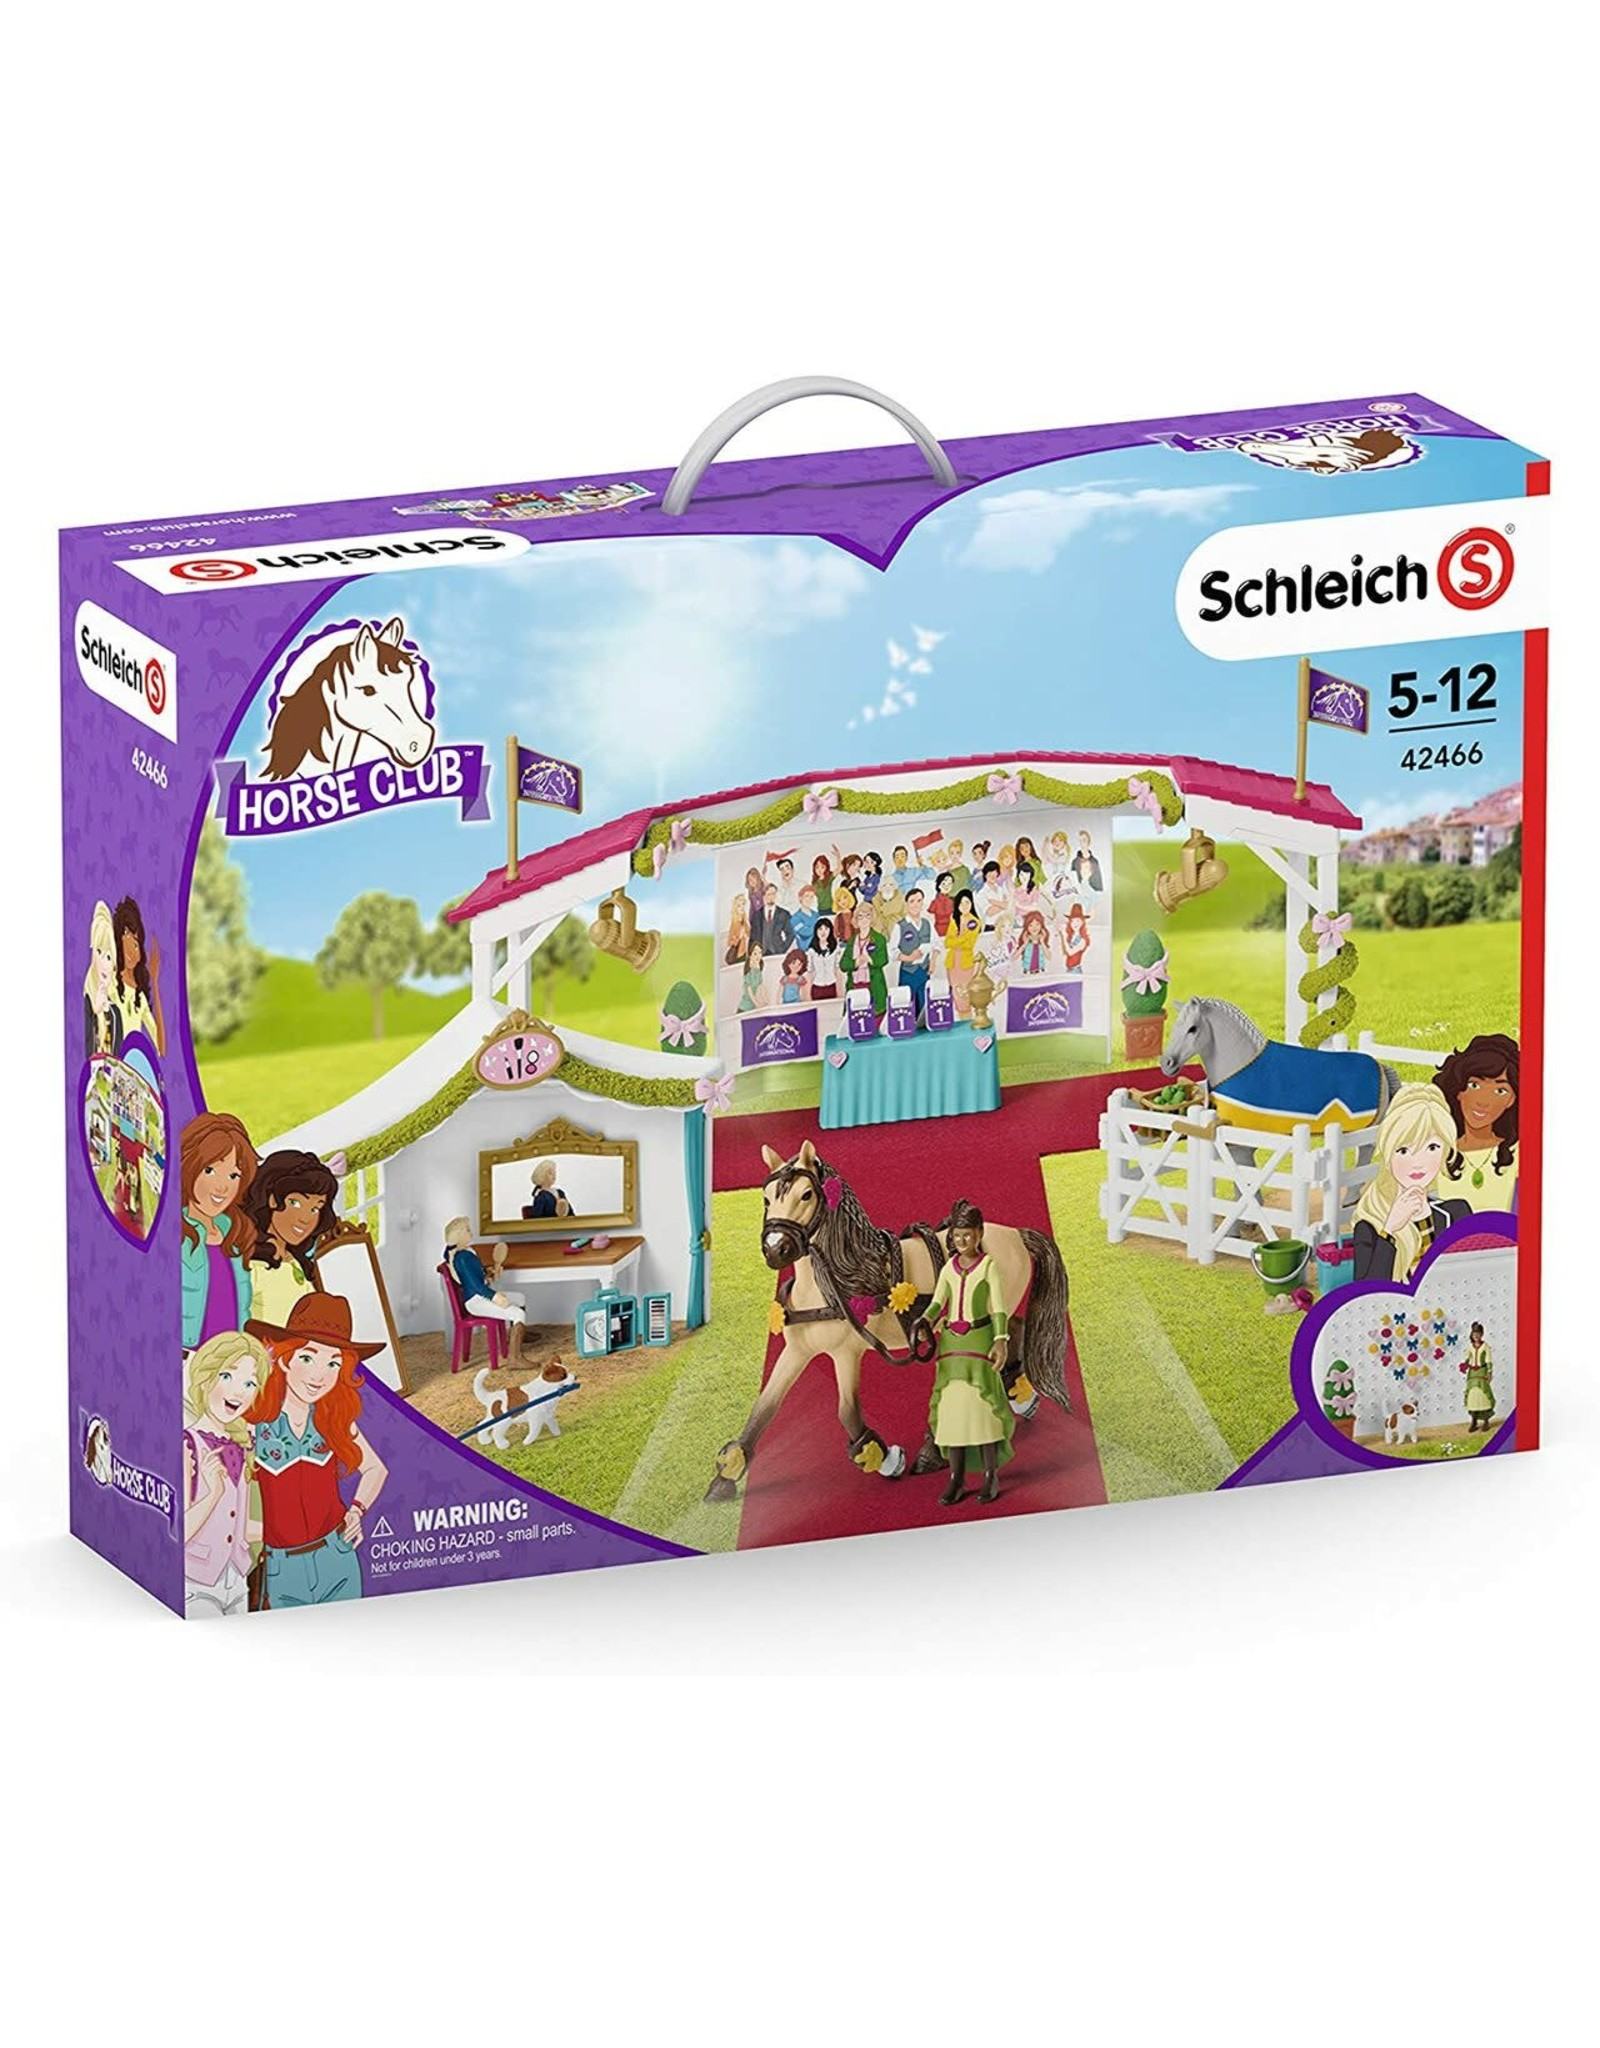 Schleich Big Horse Show with Dressing Tent